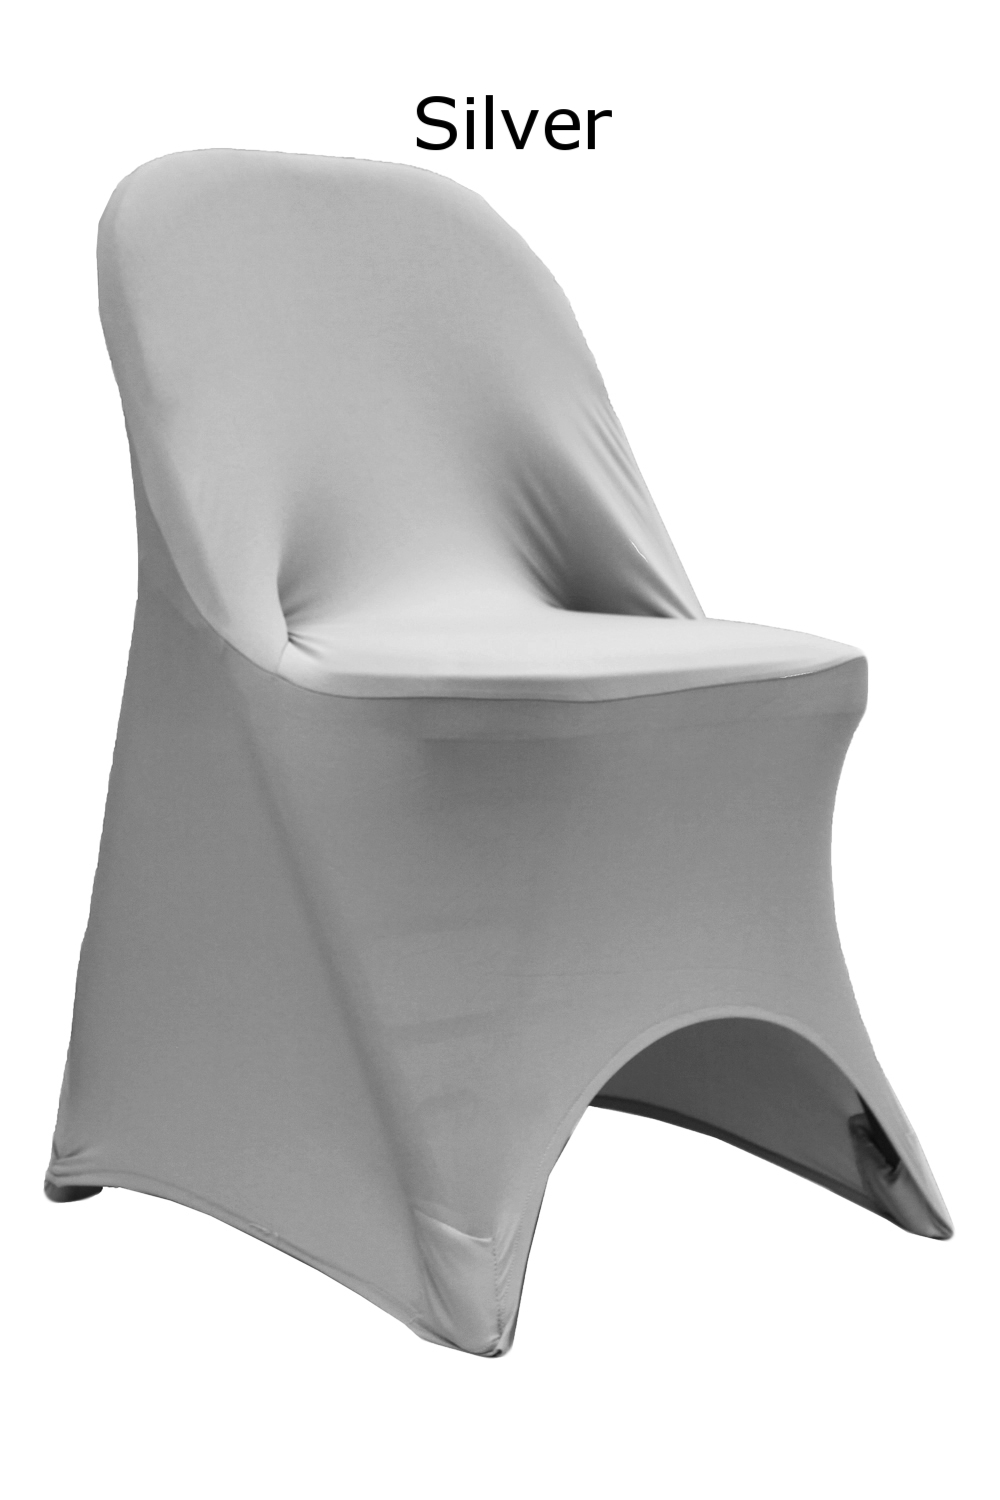 Chair Cover Stretch Silver.jpg